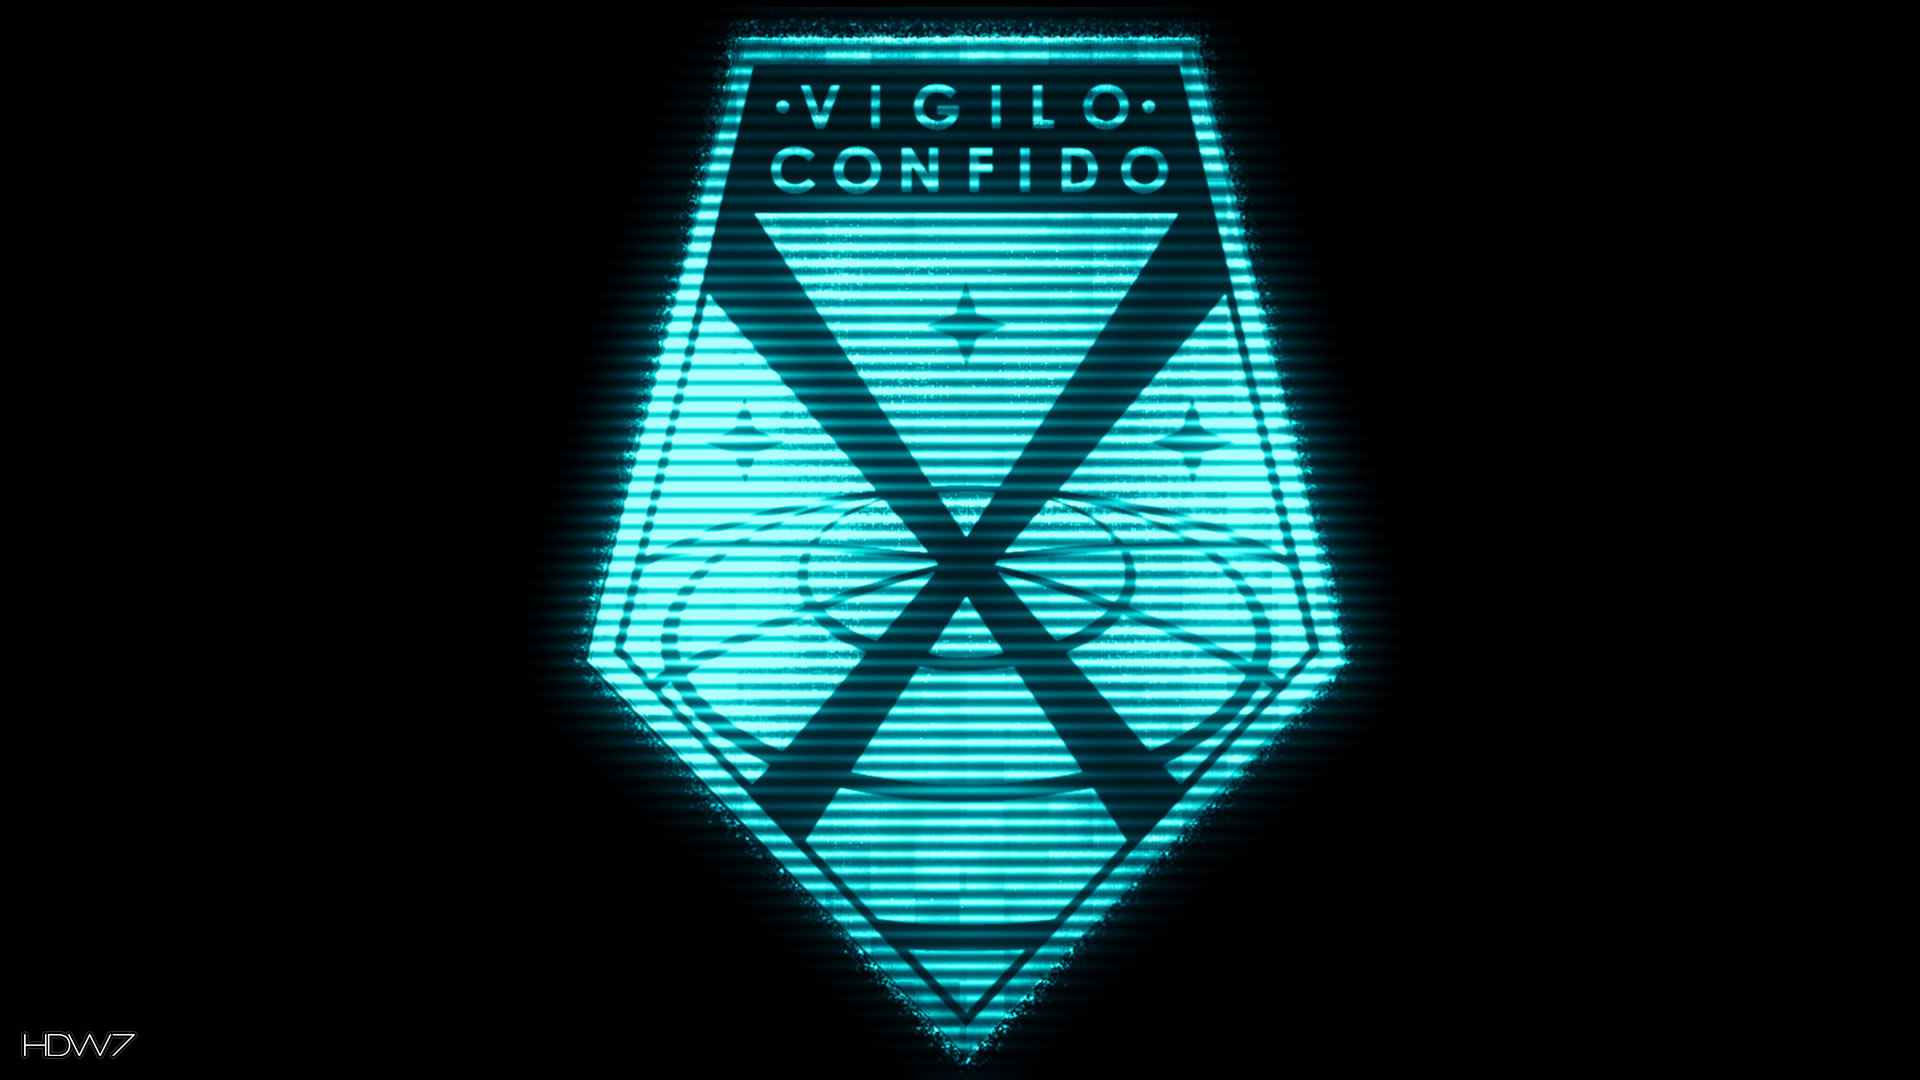 xcom enemy unknown vigilo confido widescreen hd wallpaper | hd